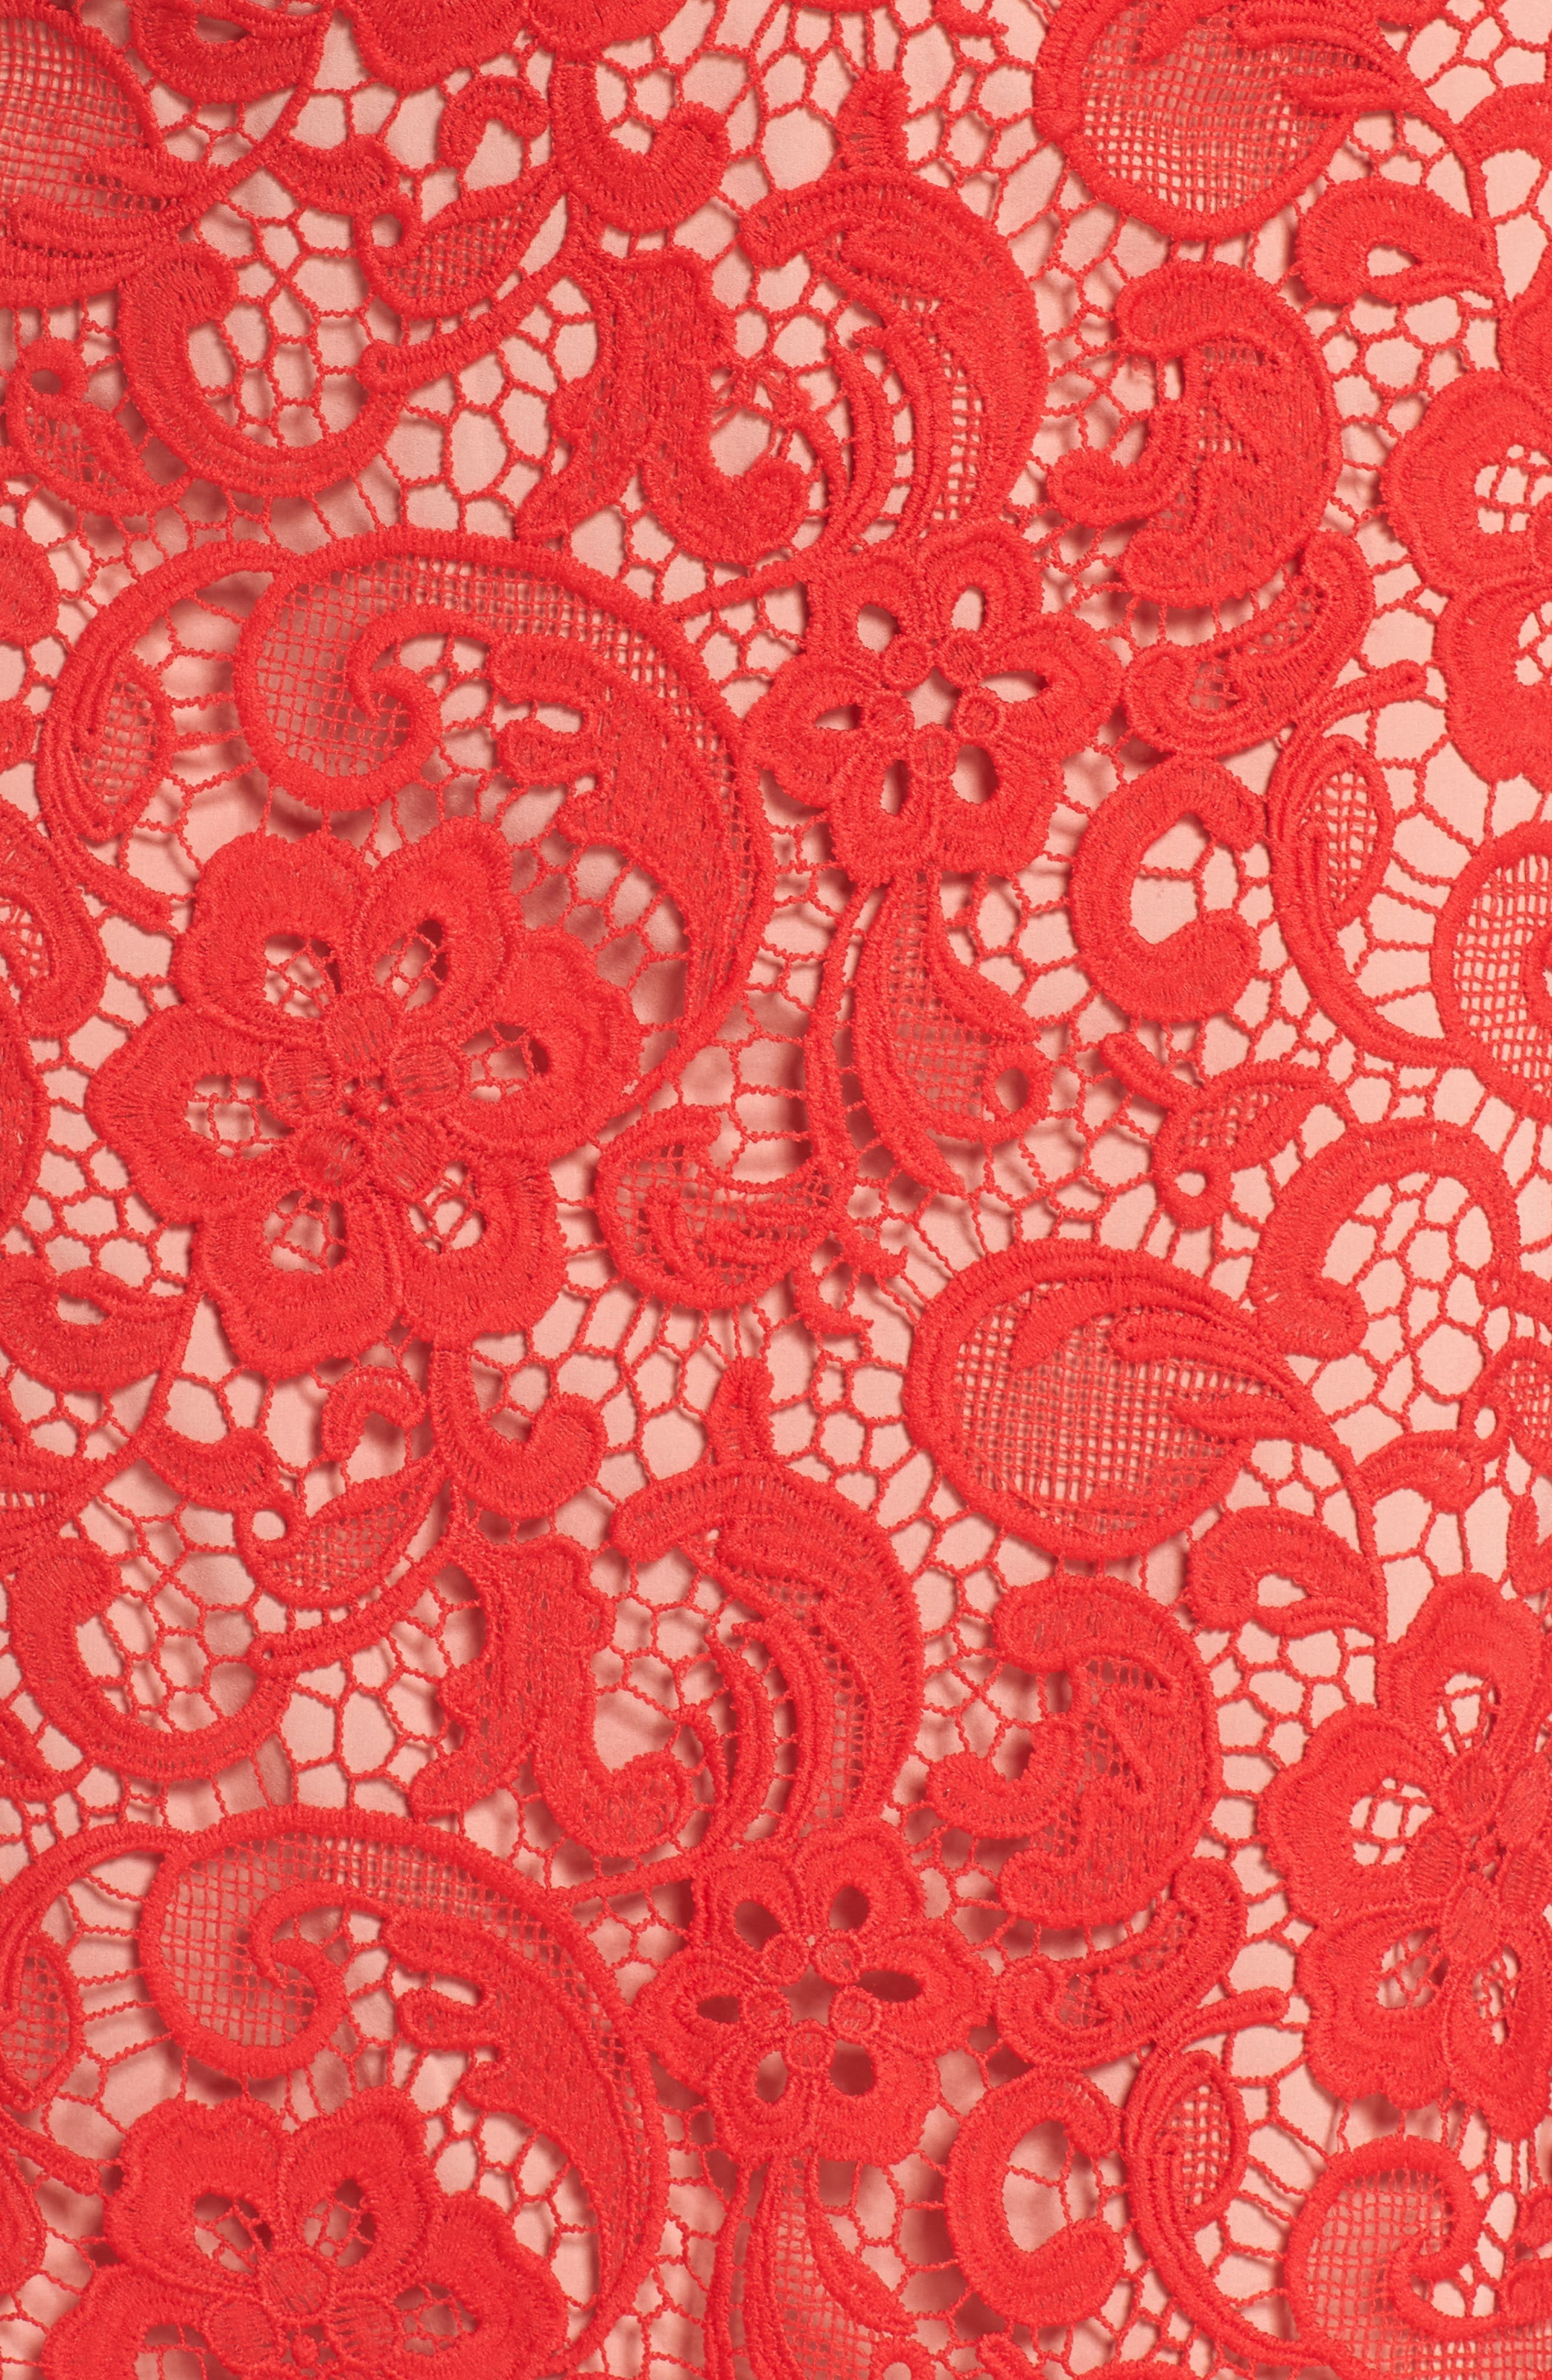 Carnation Lace Dress,                             Alternate thumbnail 5, color,                             Red Fiery